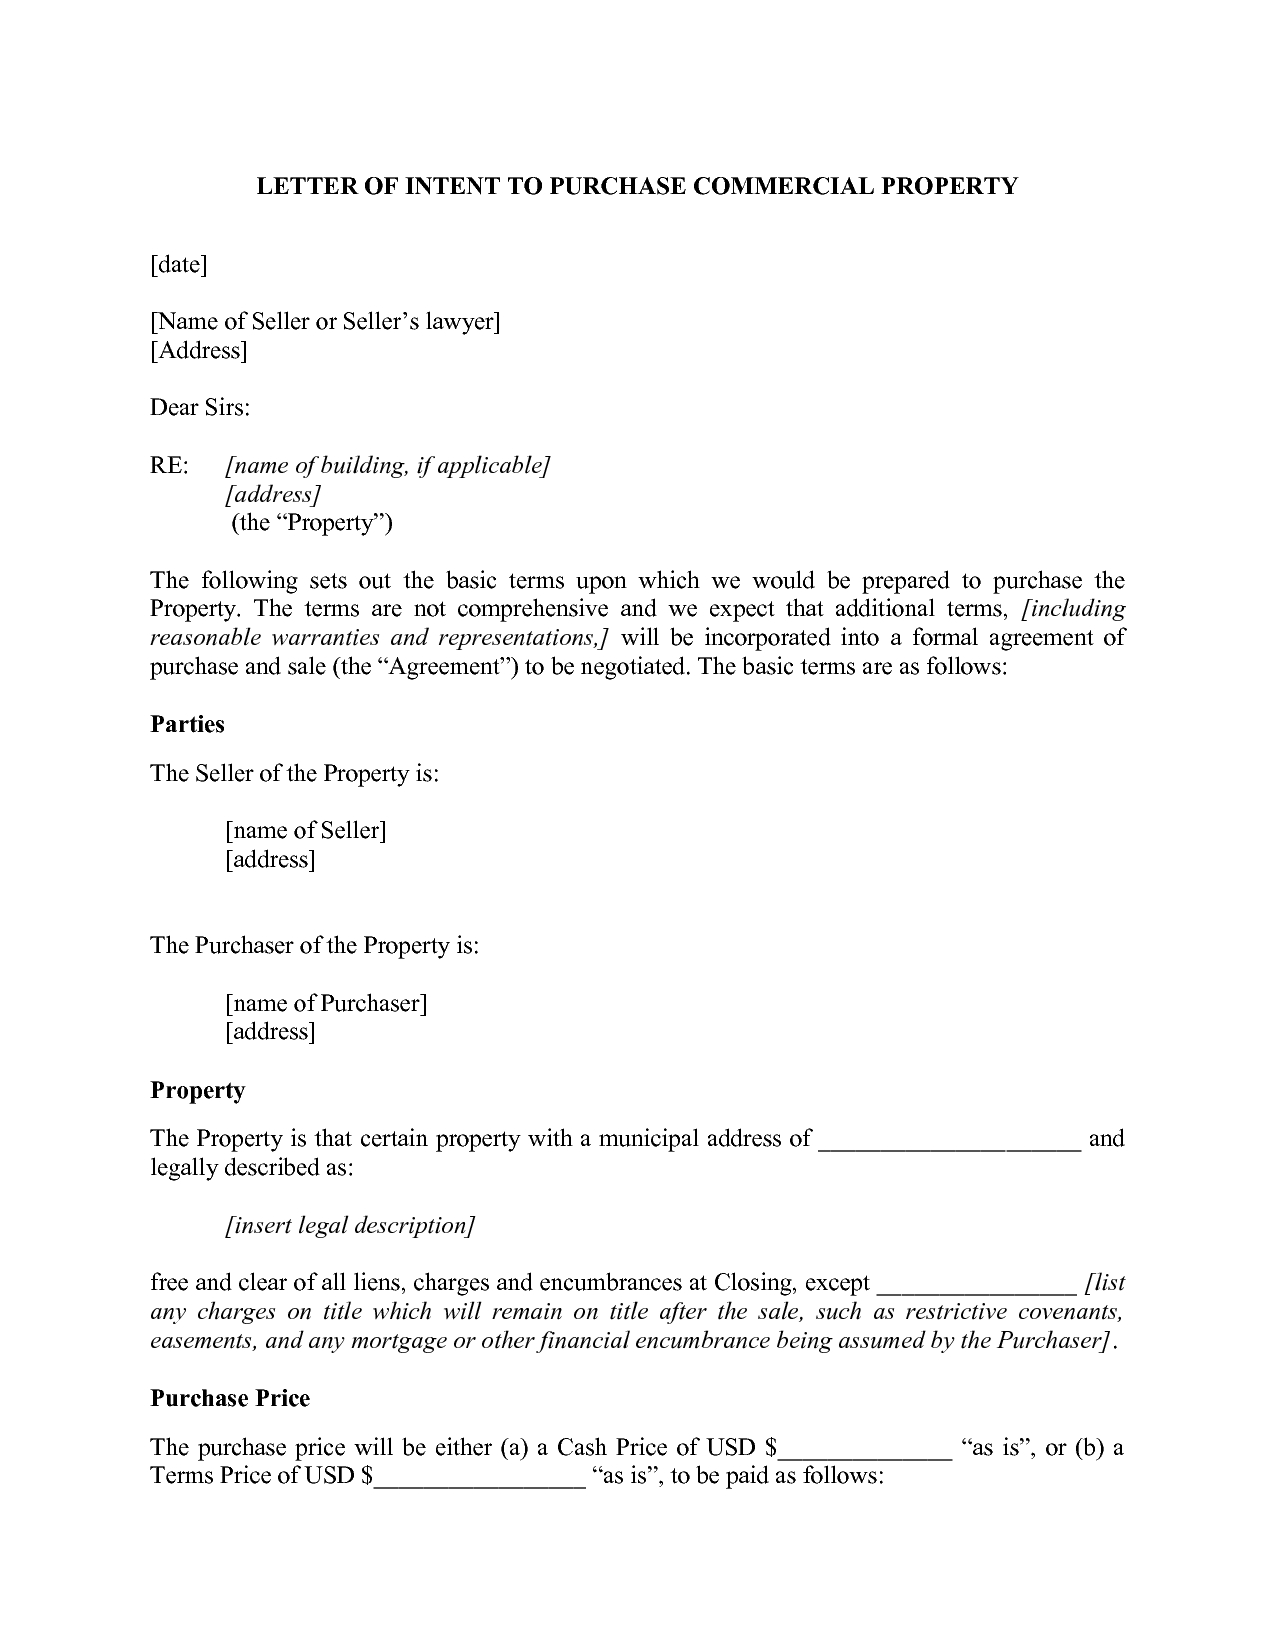 Commercial Real Estate Lease Letter Of Intent Template - Sample Letter Intent Jpeg to Lease Mercial Property Pdf In